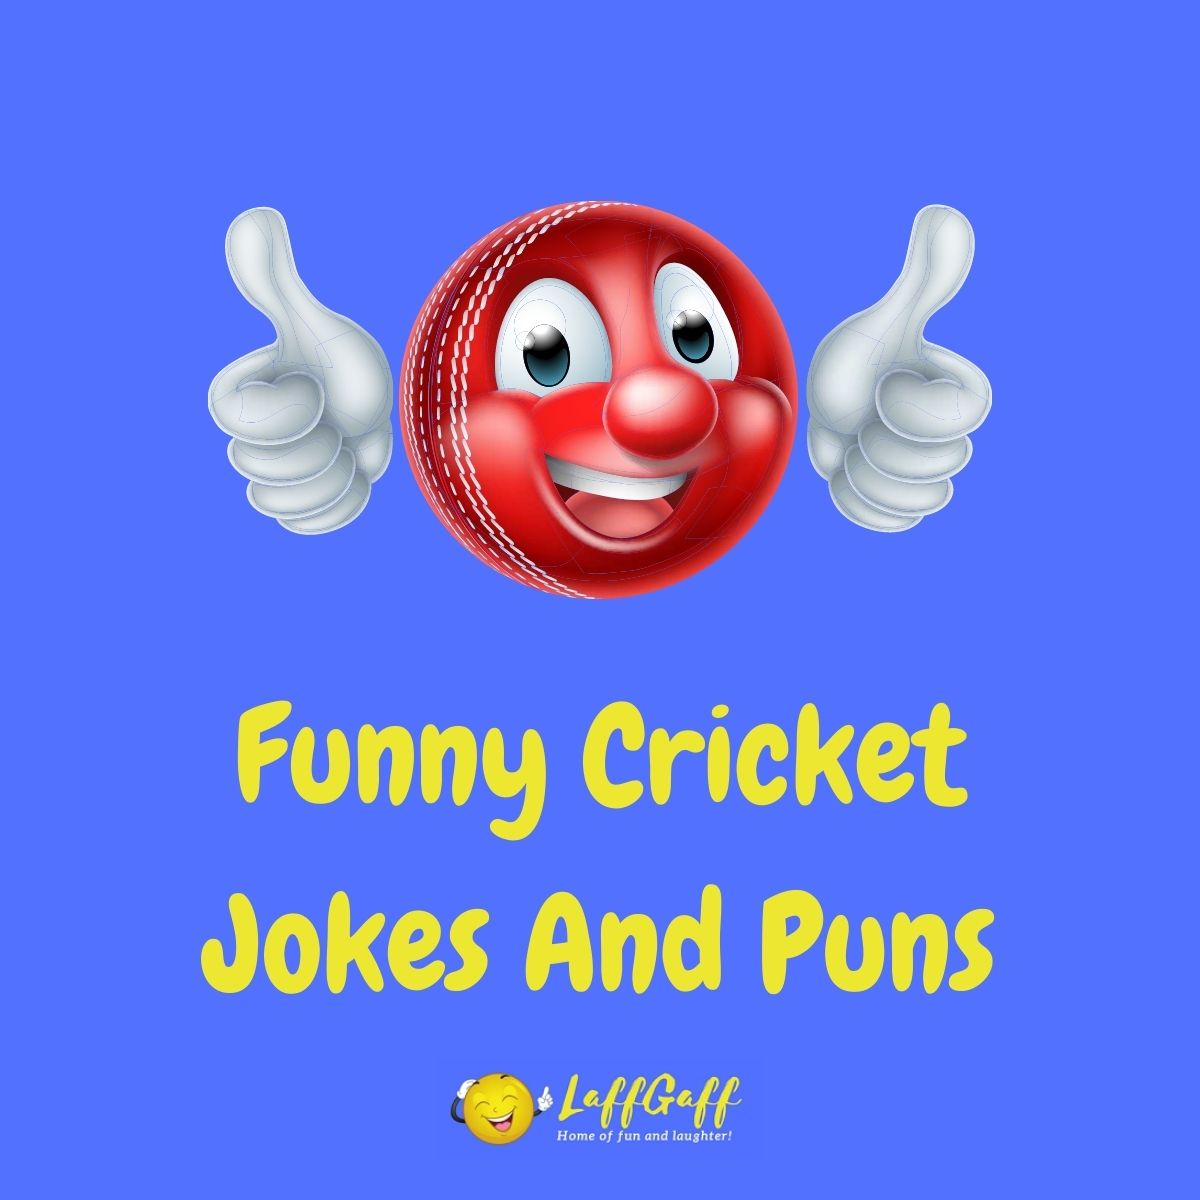 Featured image for a page of funny cricket jokes and puns.